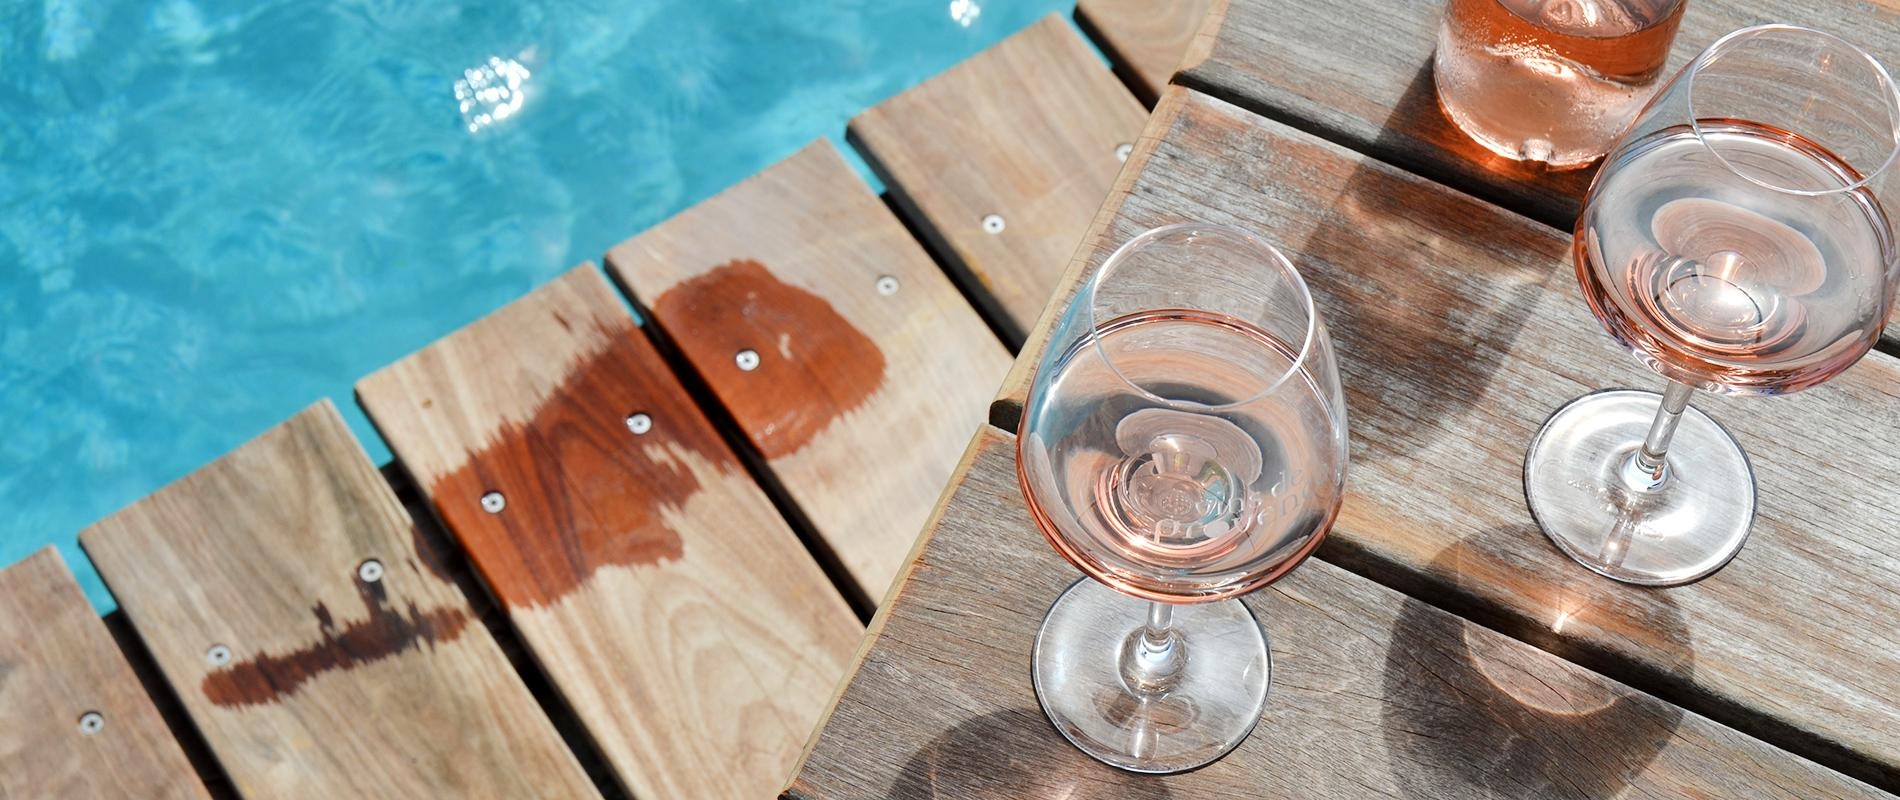 The best rose wines to enjoy on board this summer